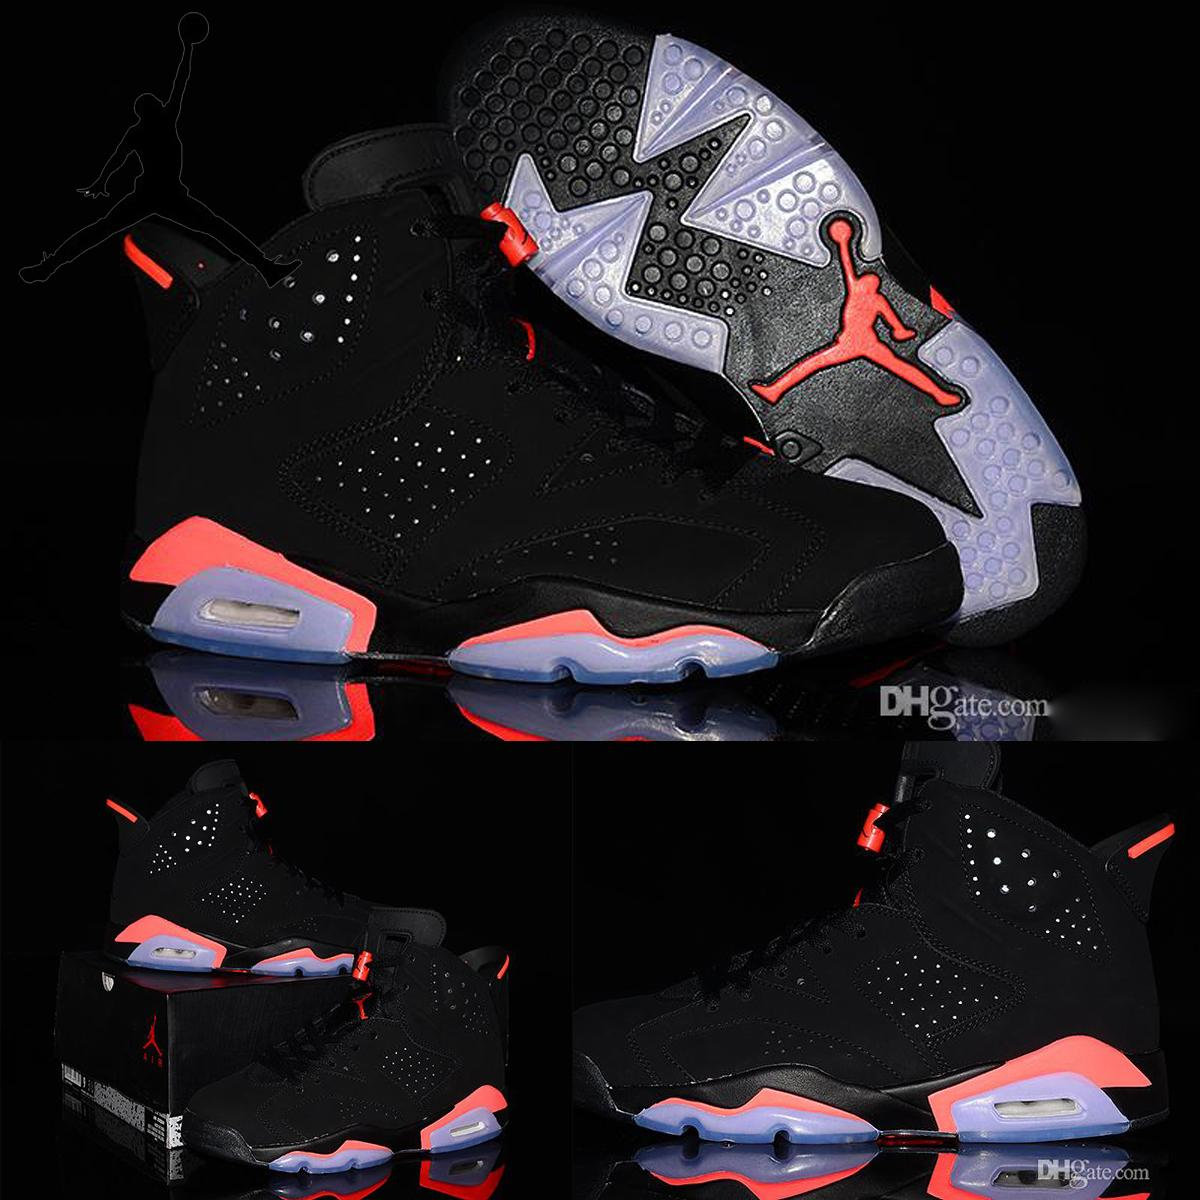 Nike Air Jordan 6 Retro VI Black Infrared 23 Gs Mens Womens Basketball Shoes,Original